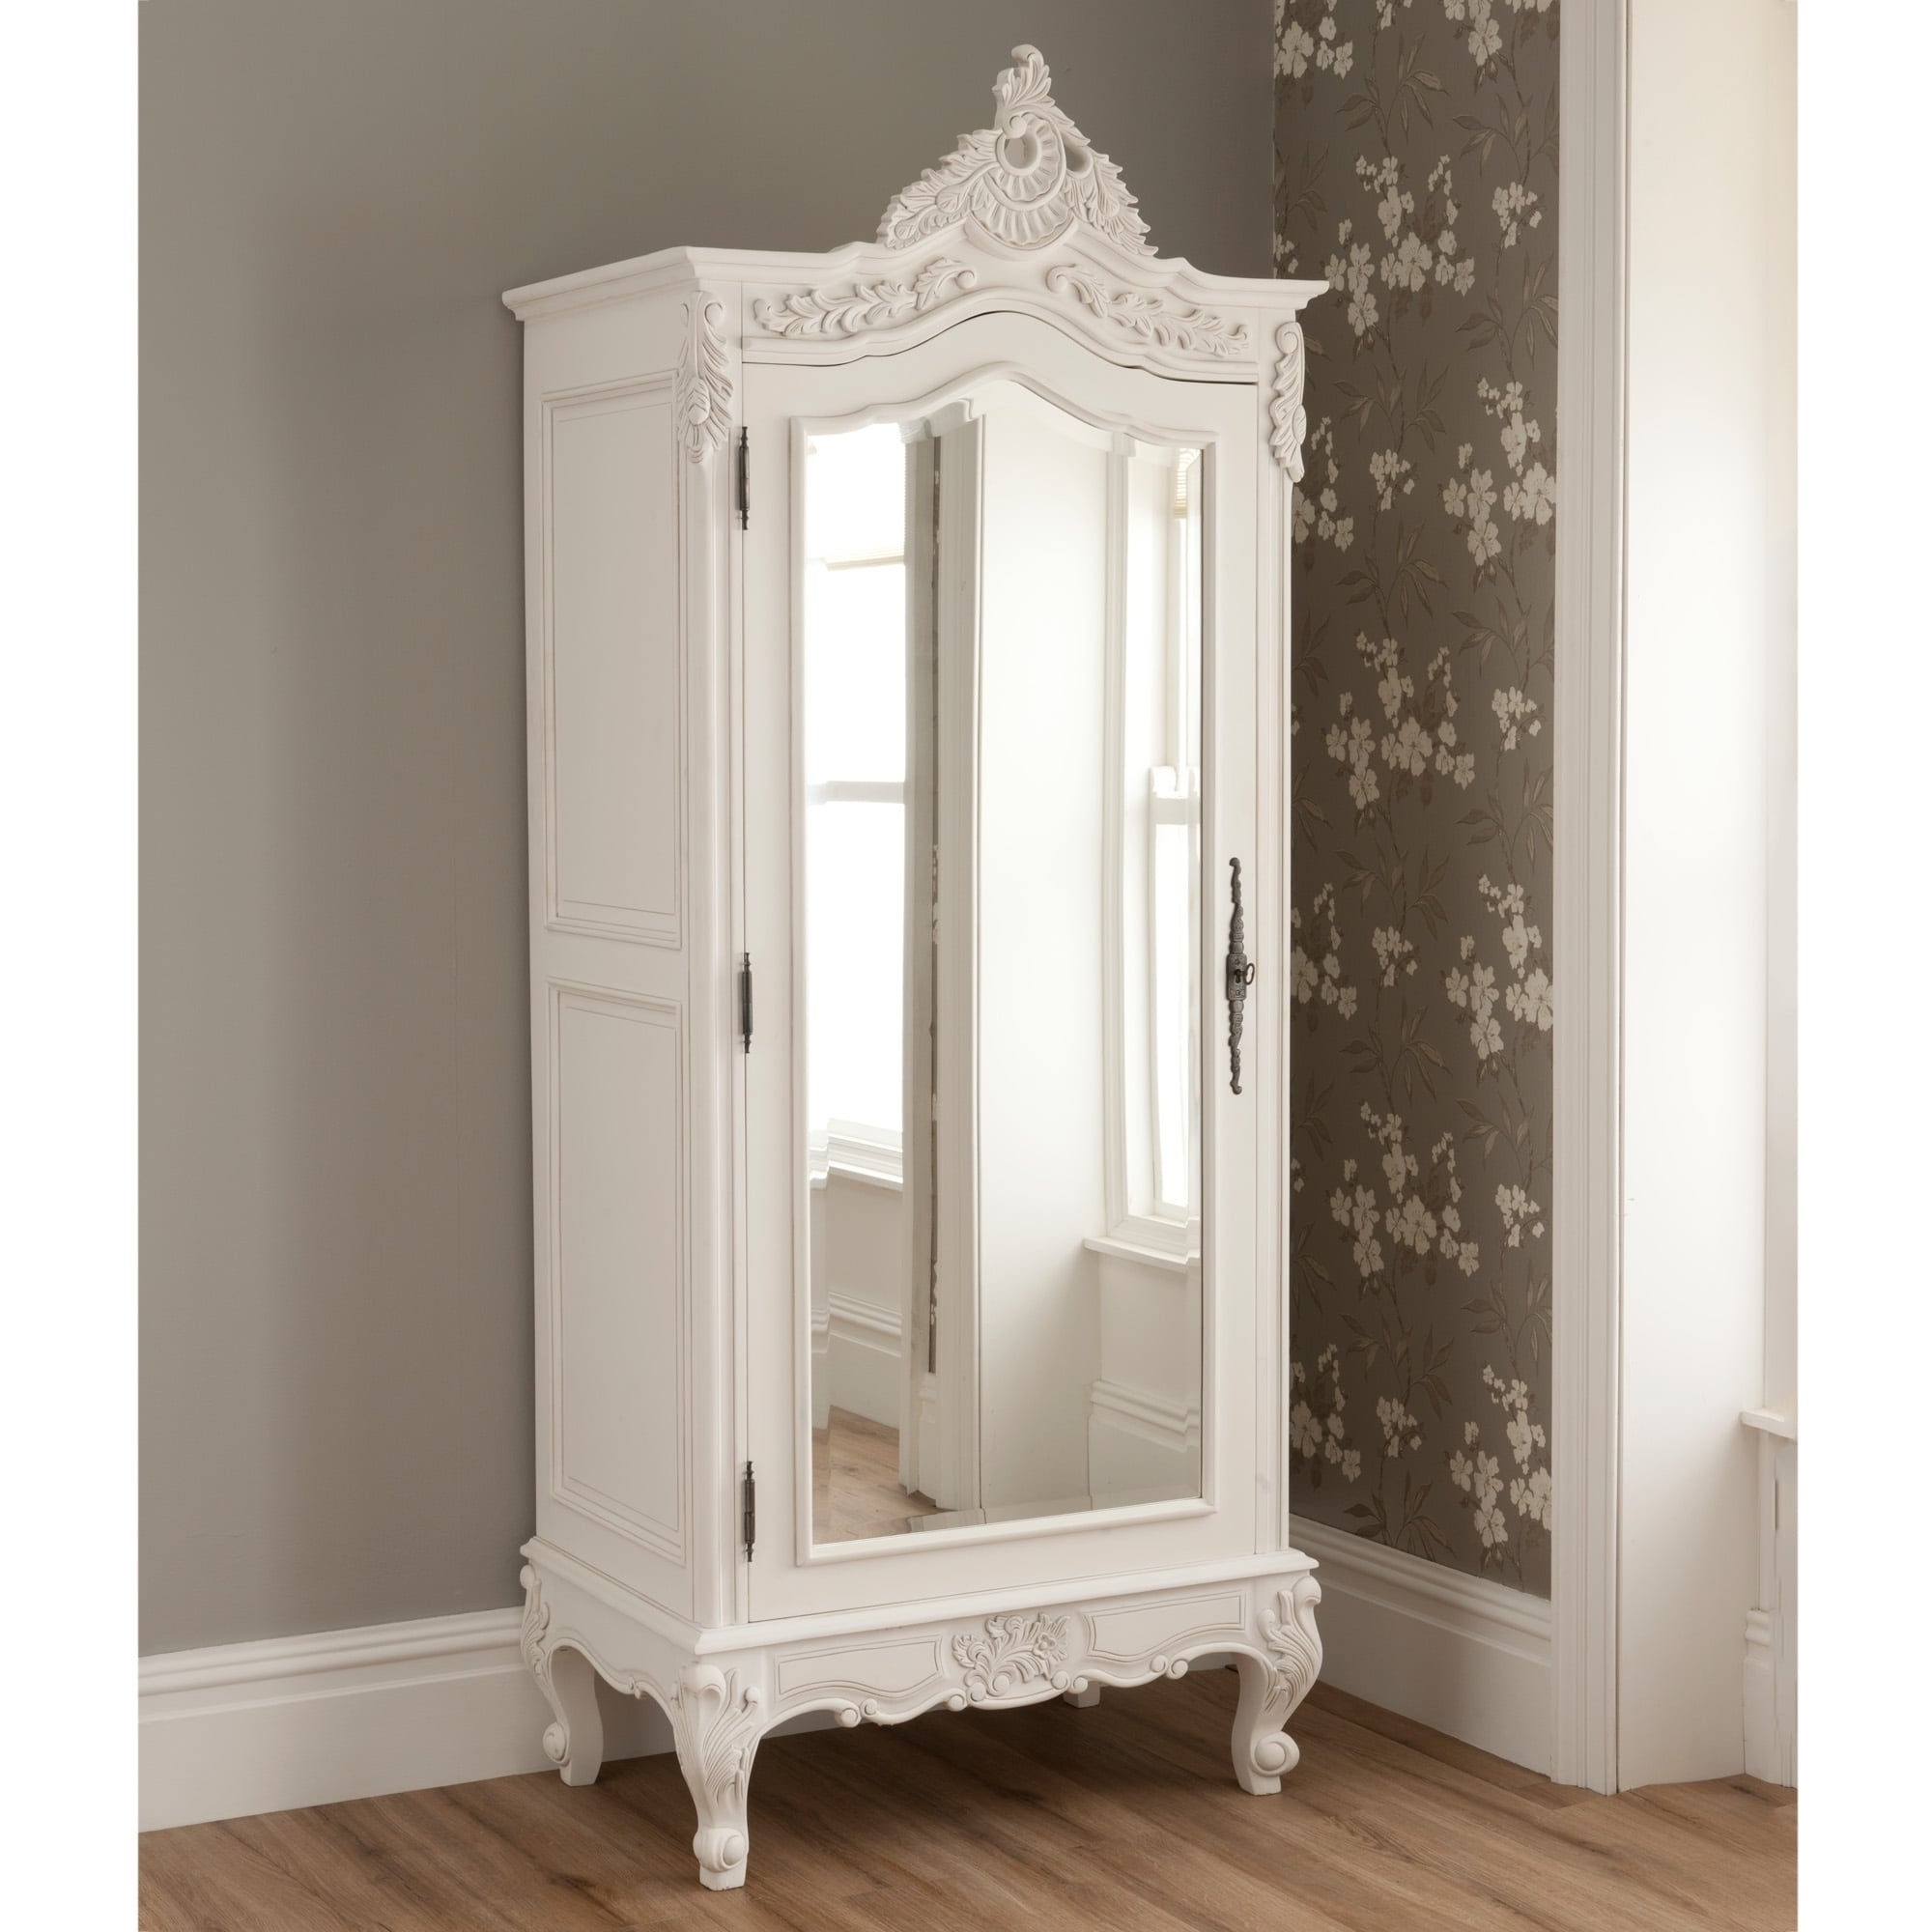 La Rochelle Mirrored Antique French 1 Door Wardrobe With Regard To Most Current Antique Style Wardrobes (View 10 of 15)